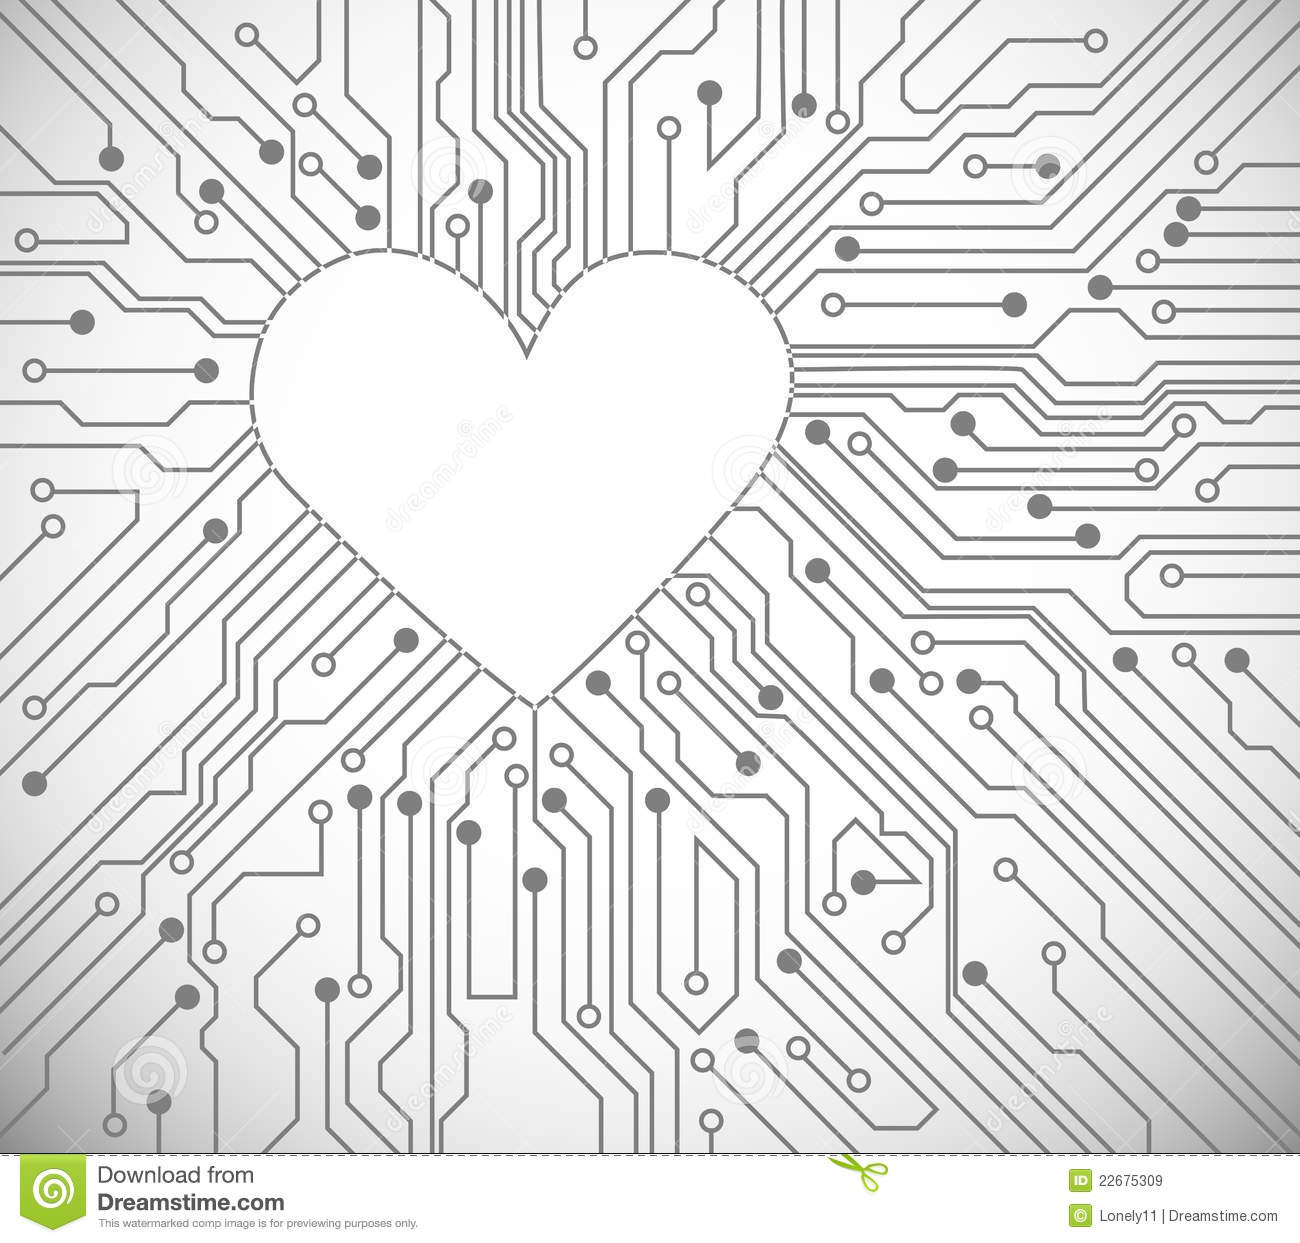 circuit board with in heart shape pattern miscellaneous vectors